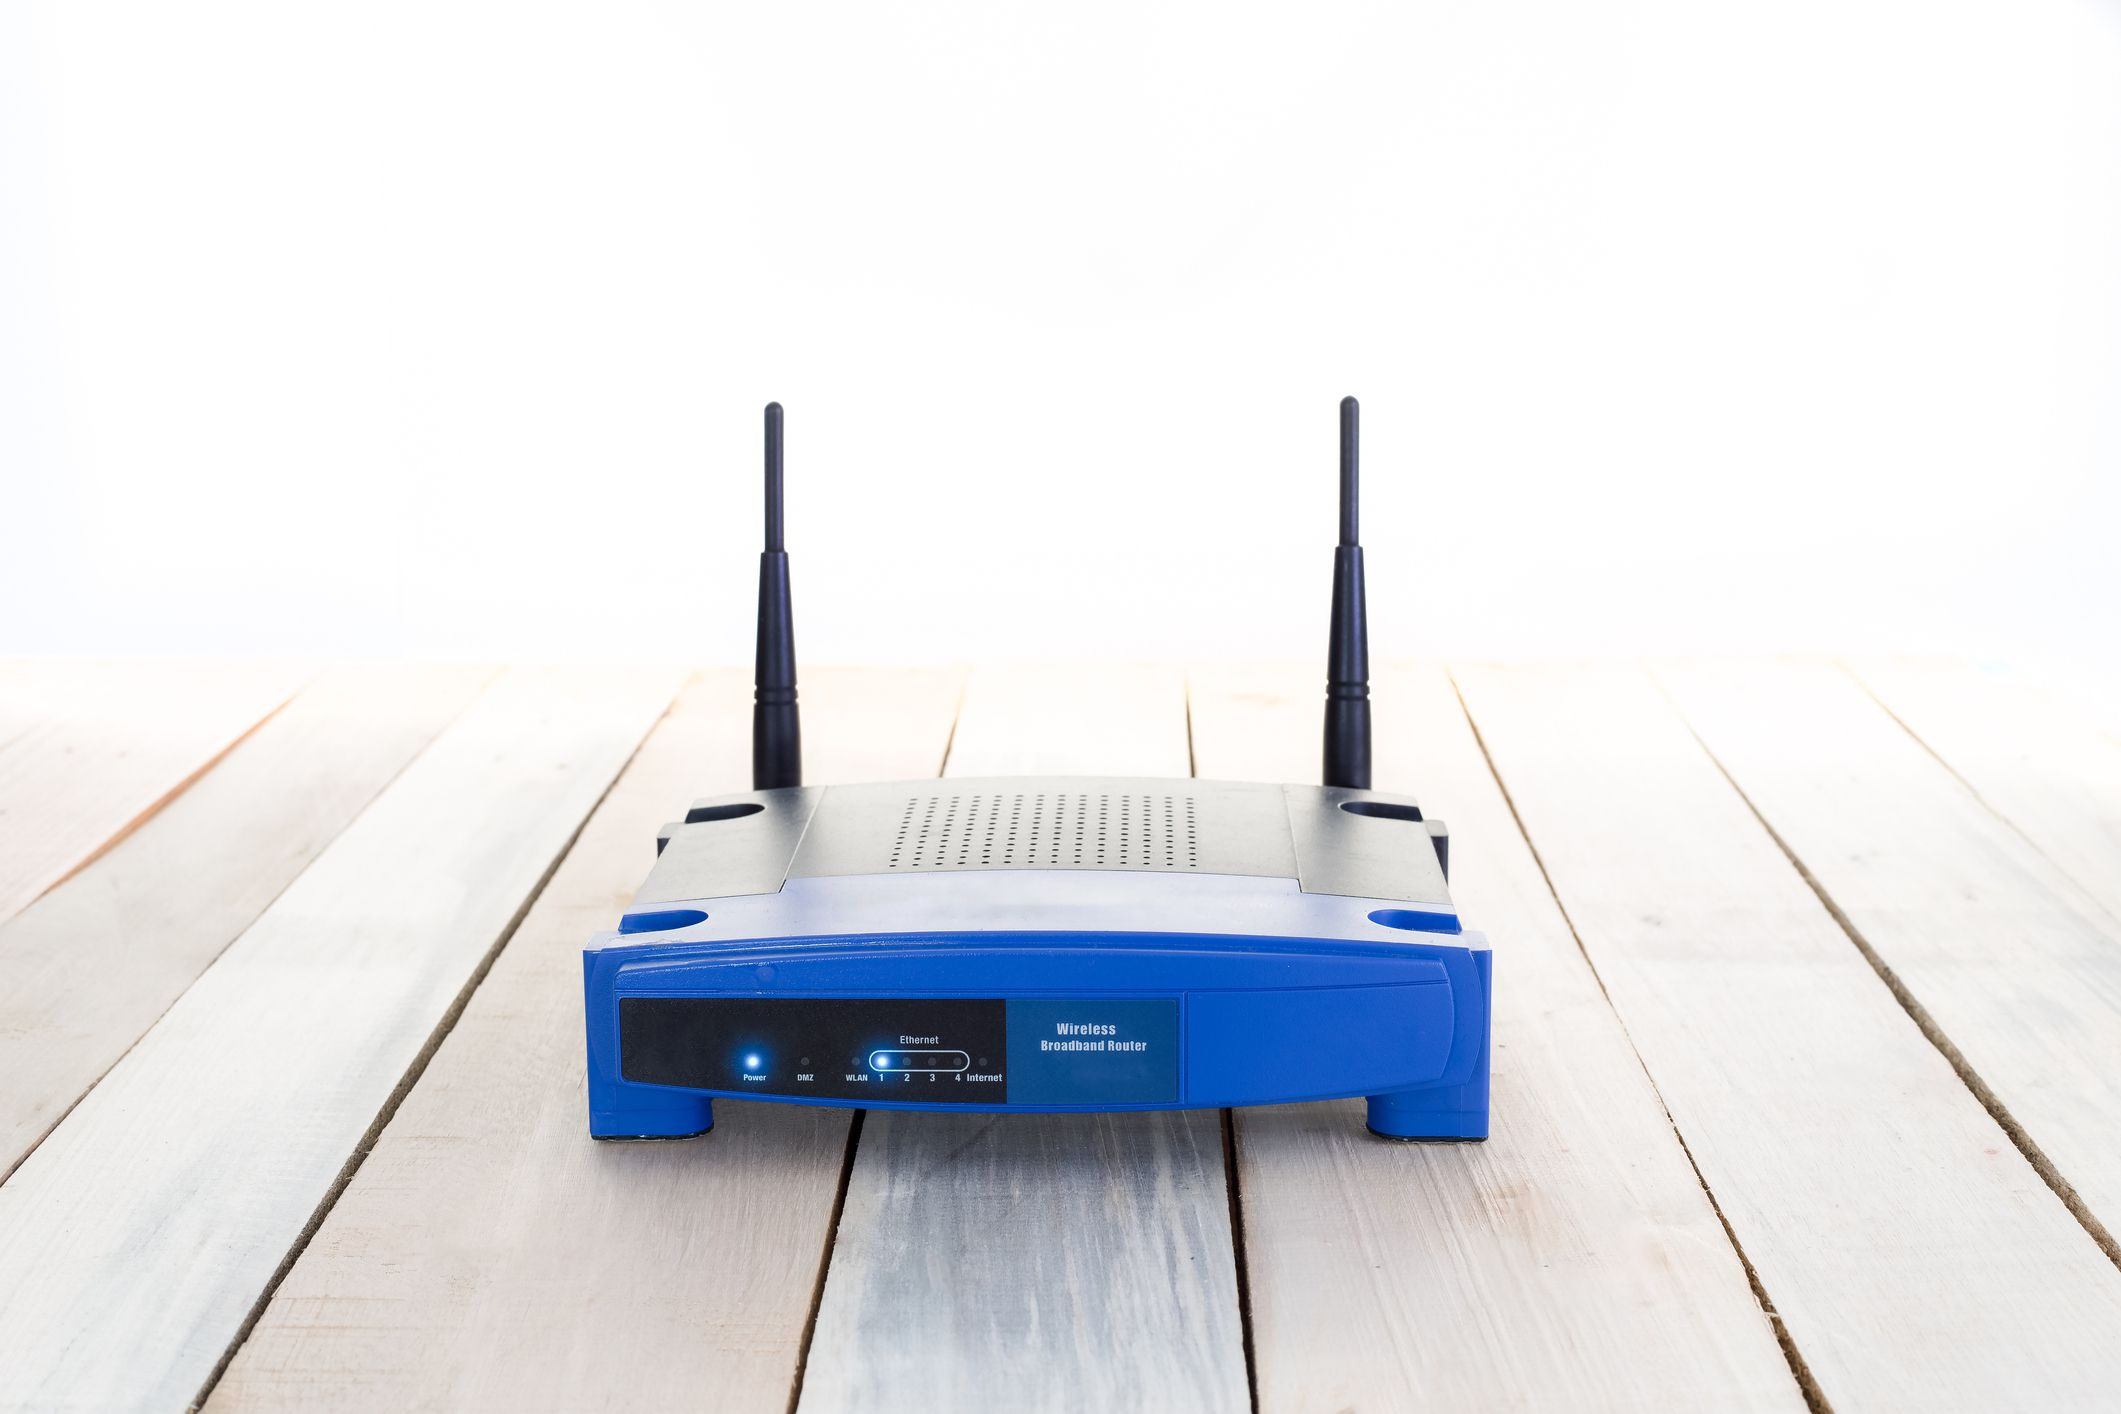 Best Small Business Routers for 2019